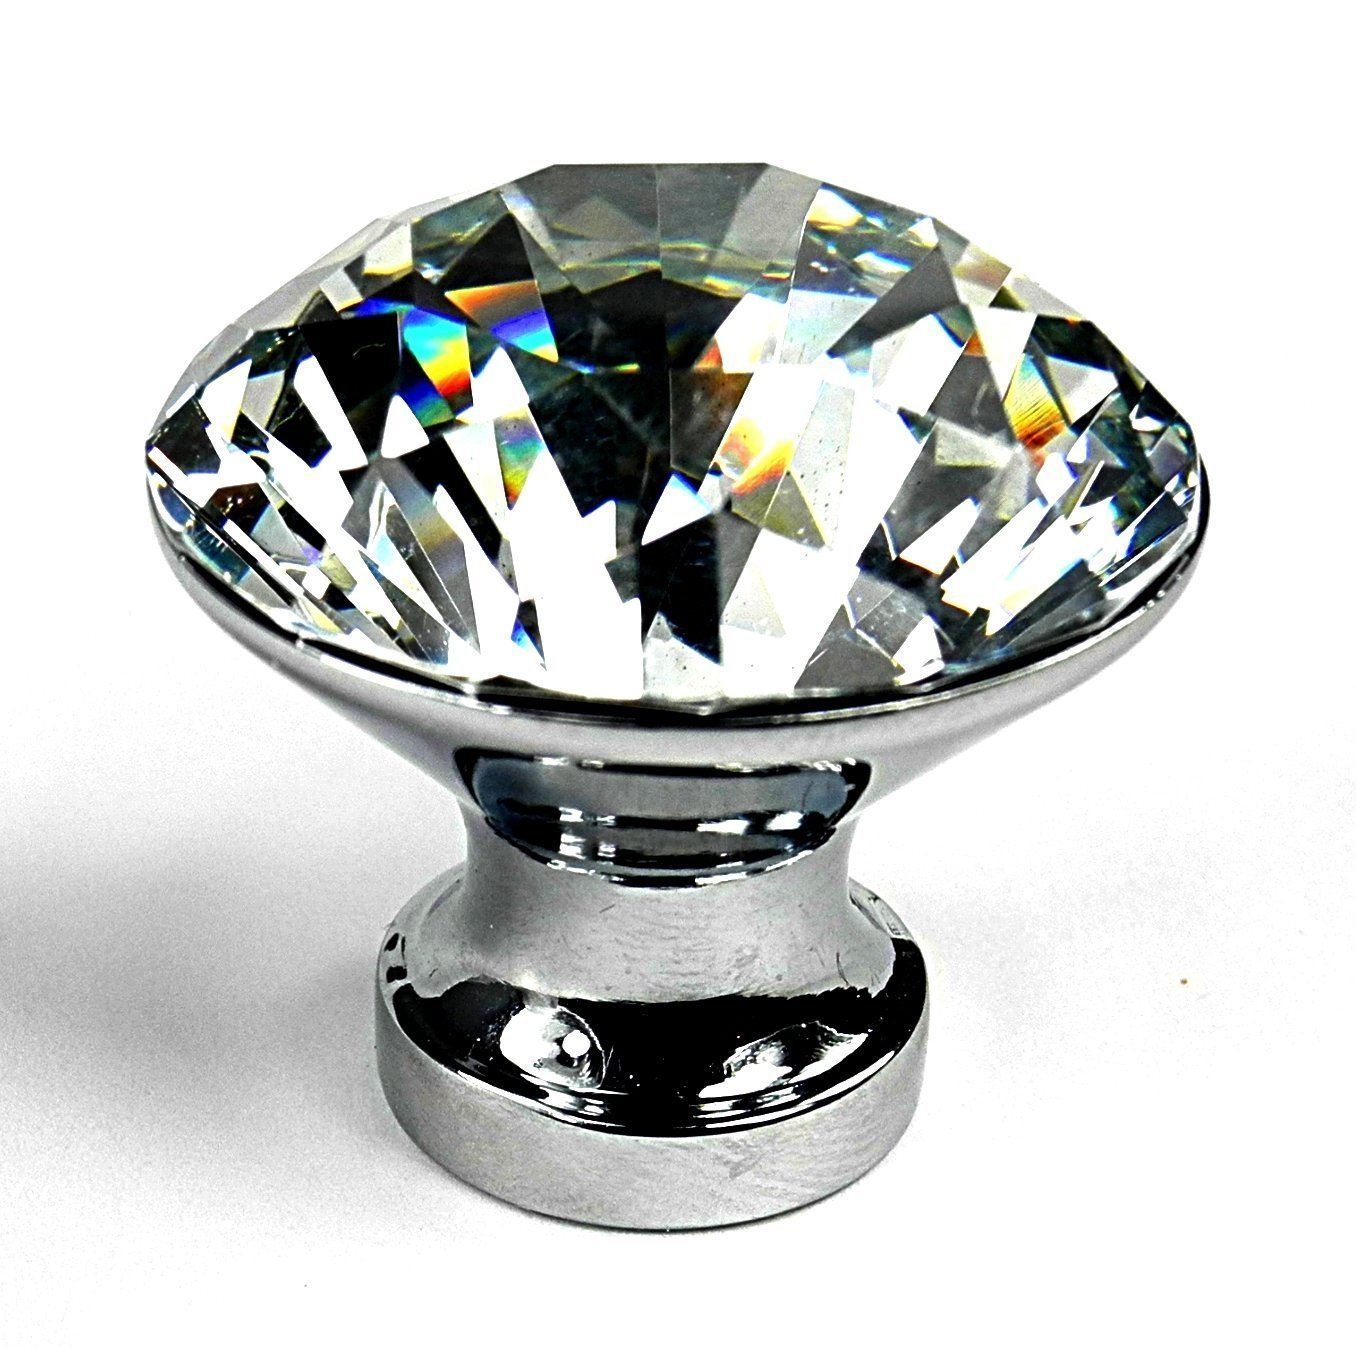 decorative paperweight diamonds buy product products diamond glass crystal star transparent wholesale detail optical clear